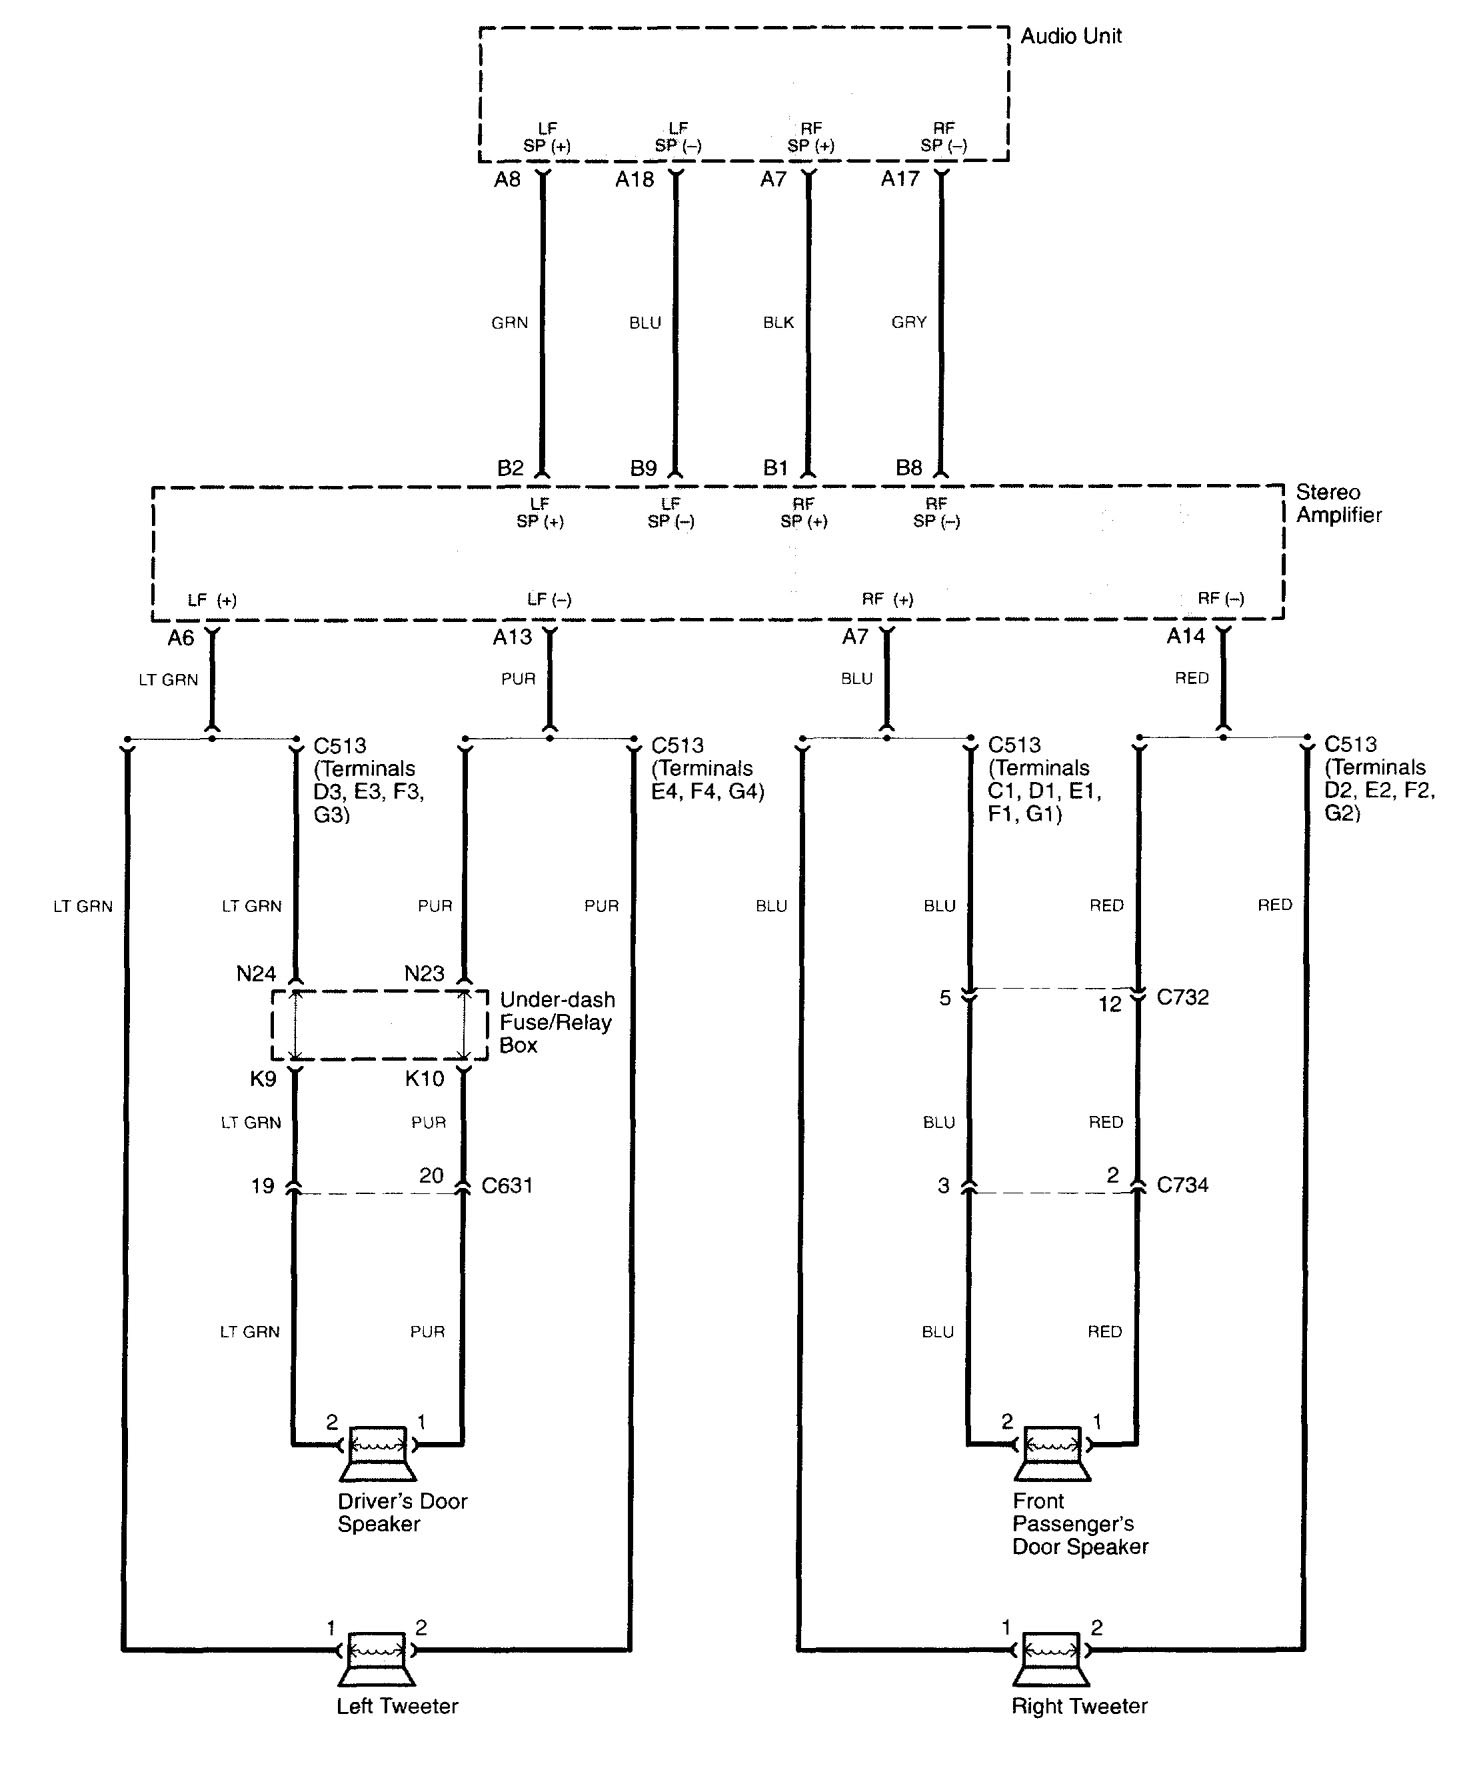 Wiring Diagrams 2004 Acura Tl 3 2l Electrical 03 Cl Diagram 2003 Onstar System Carknowledge 2001 Xl1200